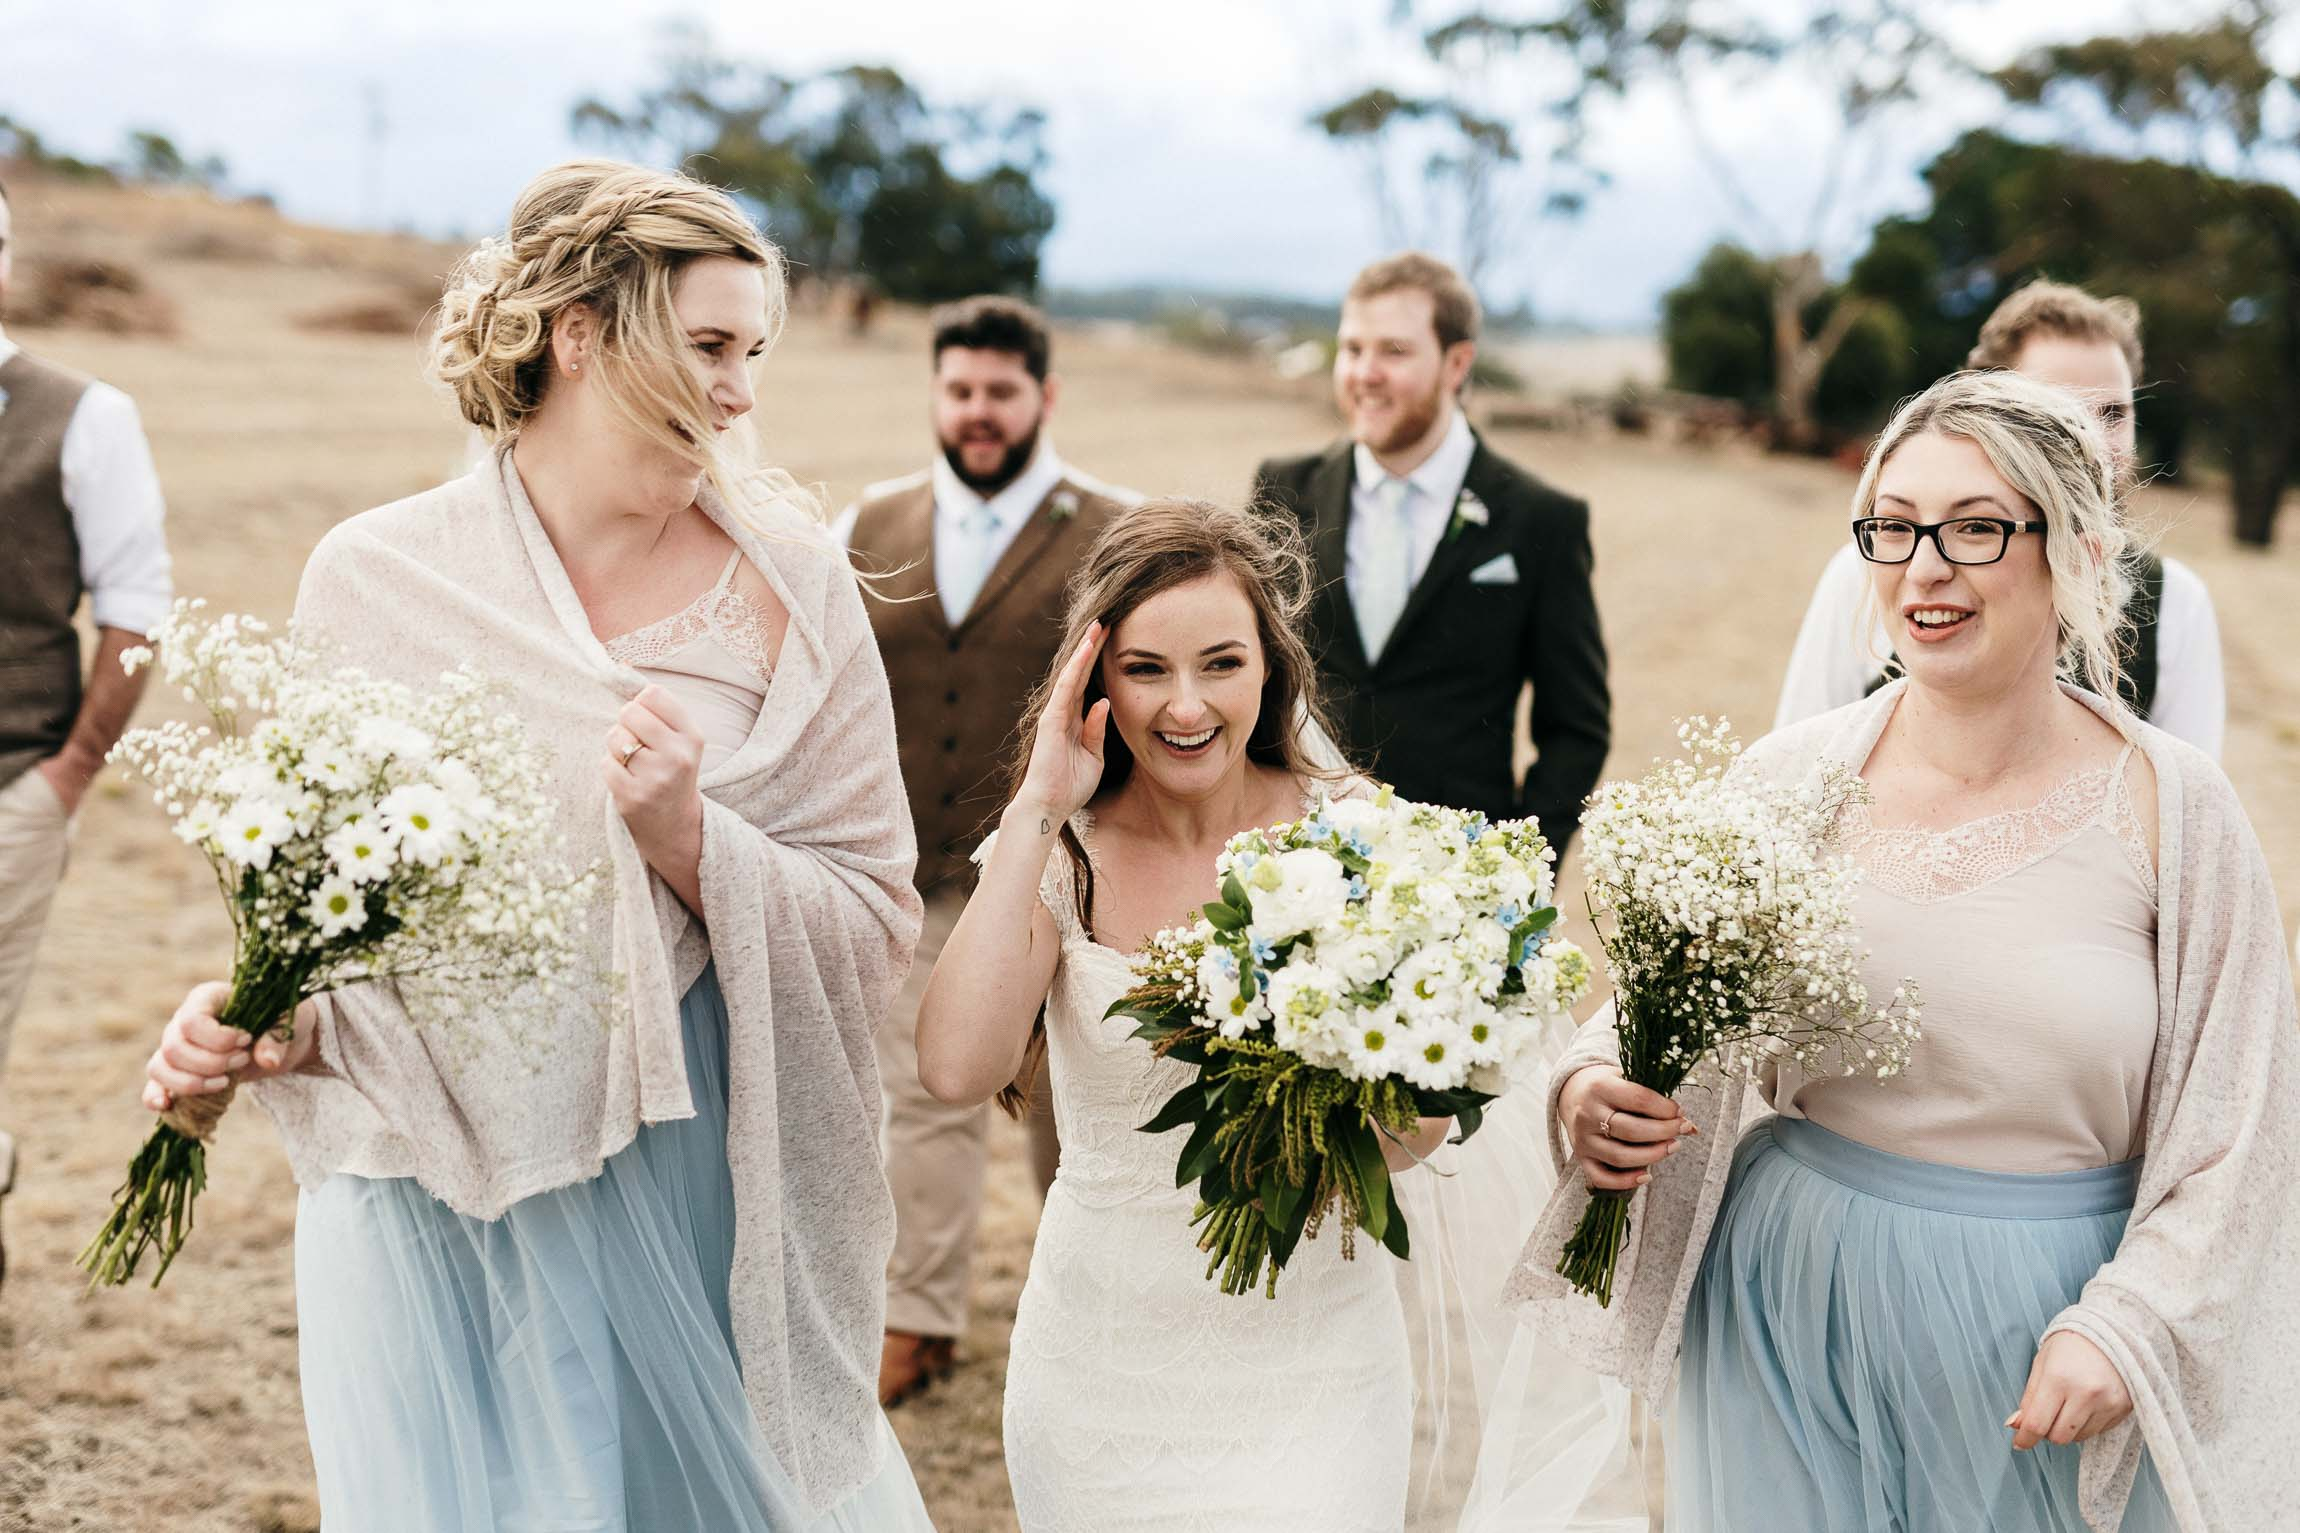 lachlan-scallion-melbourne-victoria-austrlia-mornington-peninsula-candid-relaxed-natural-chilled-wedding-photography-chelle-sean-415.jpg